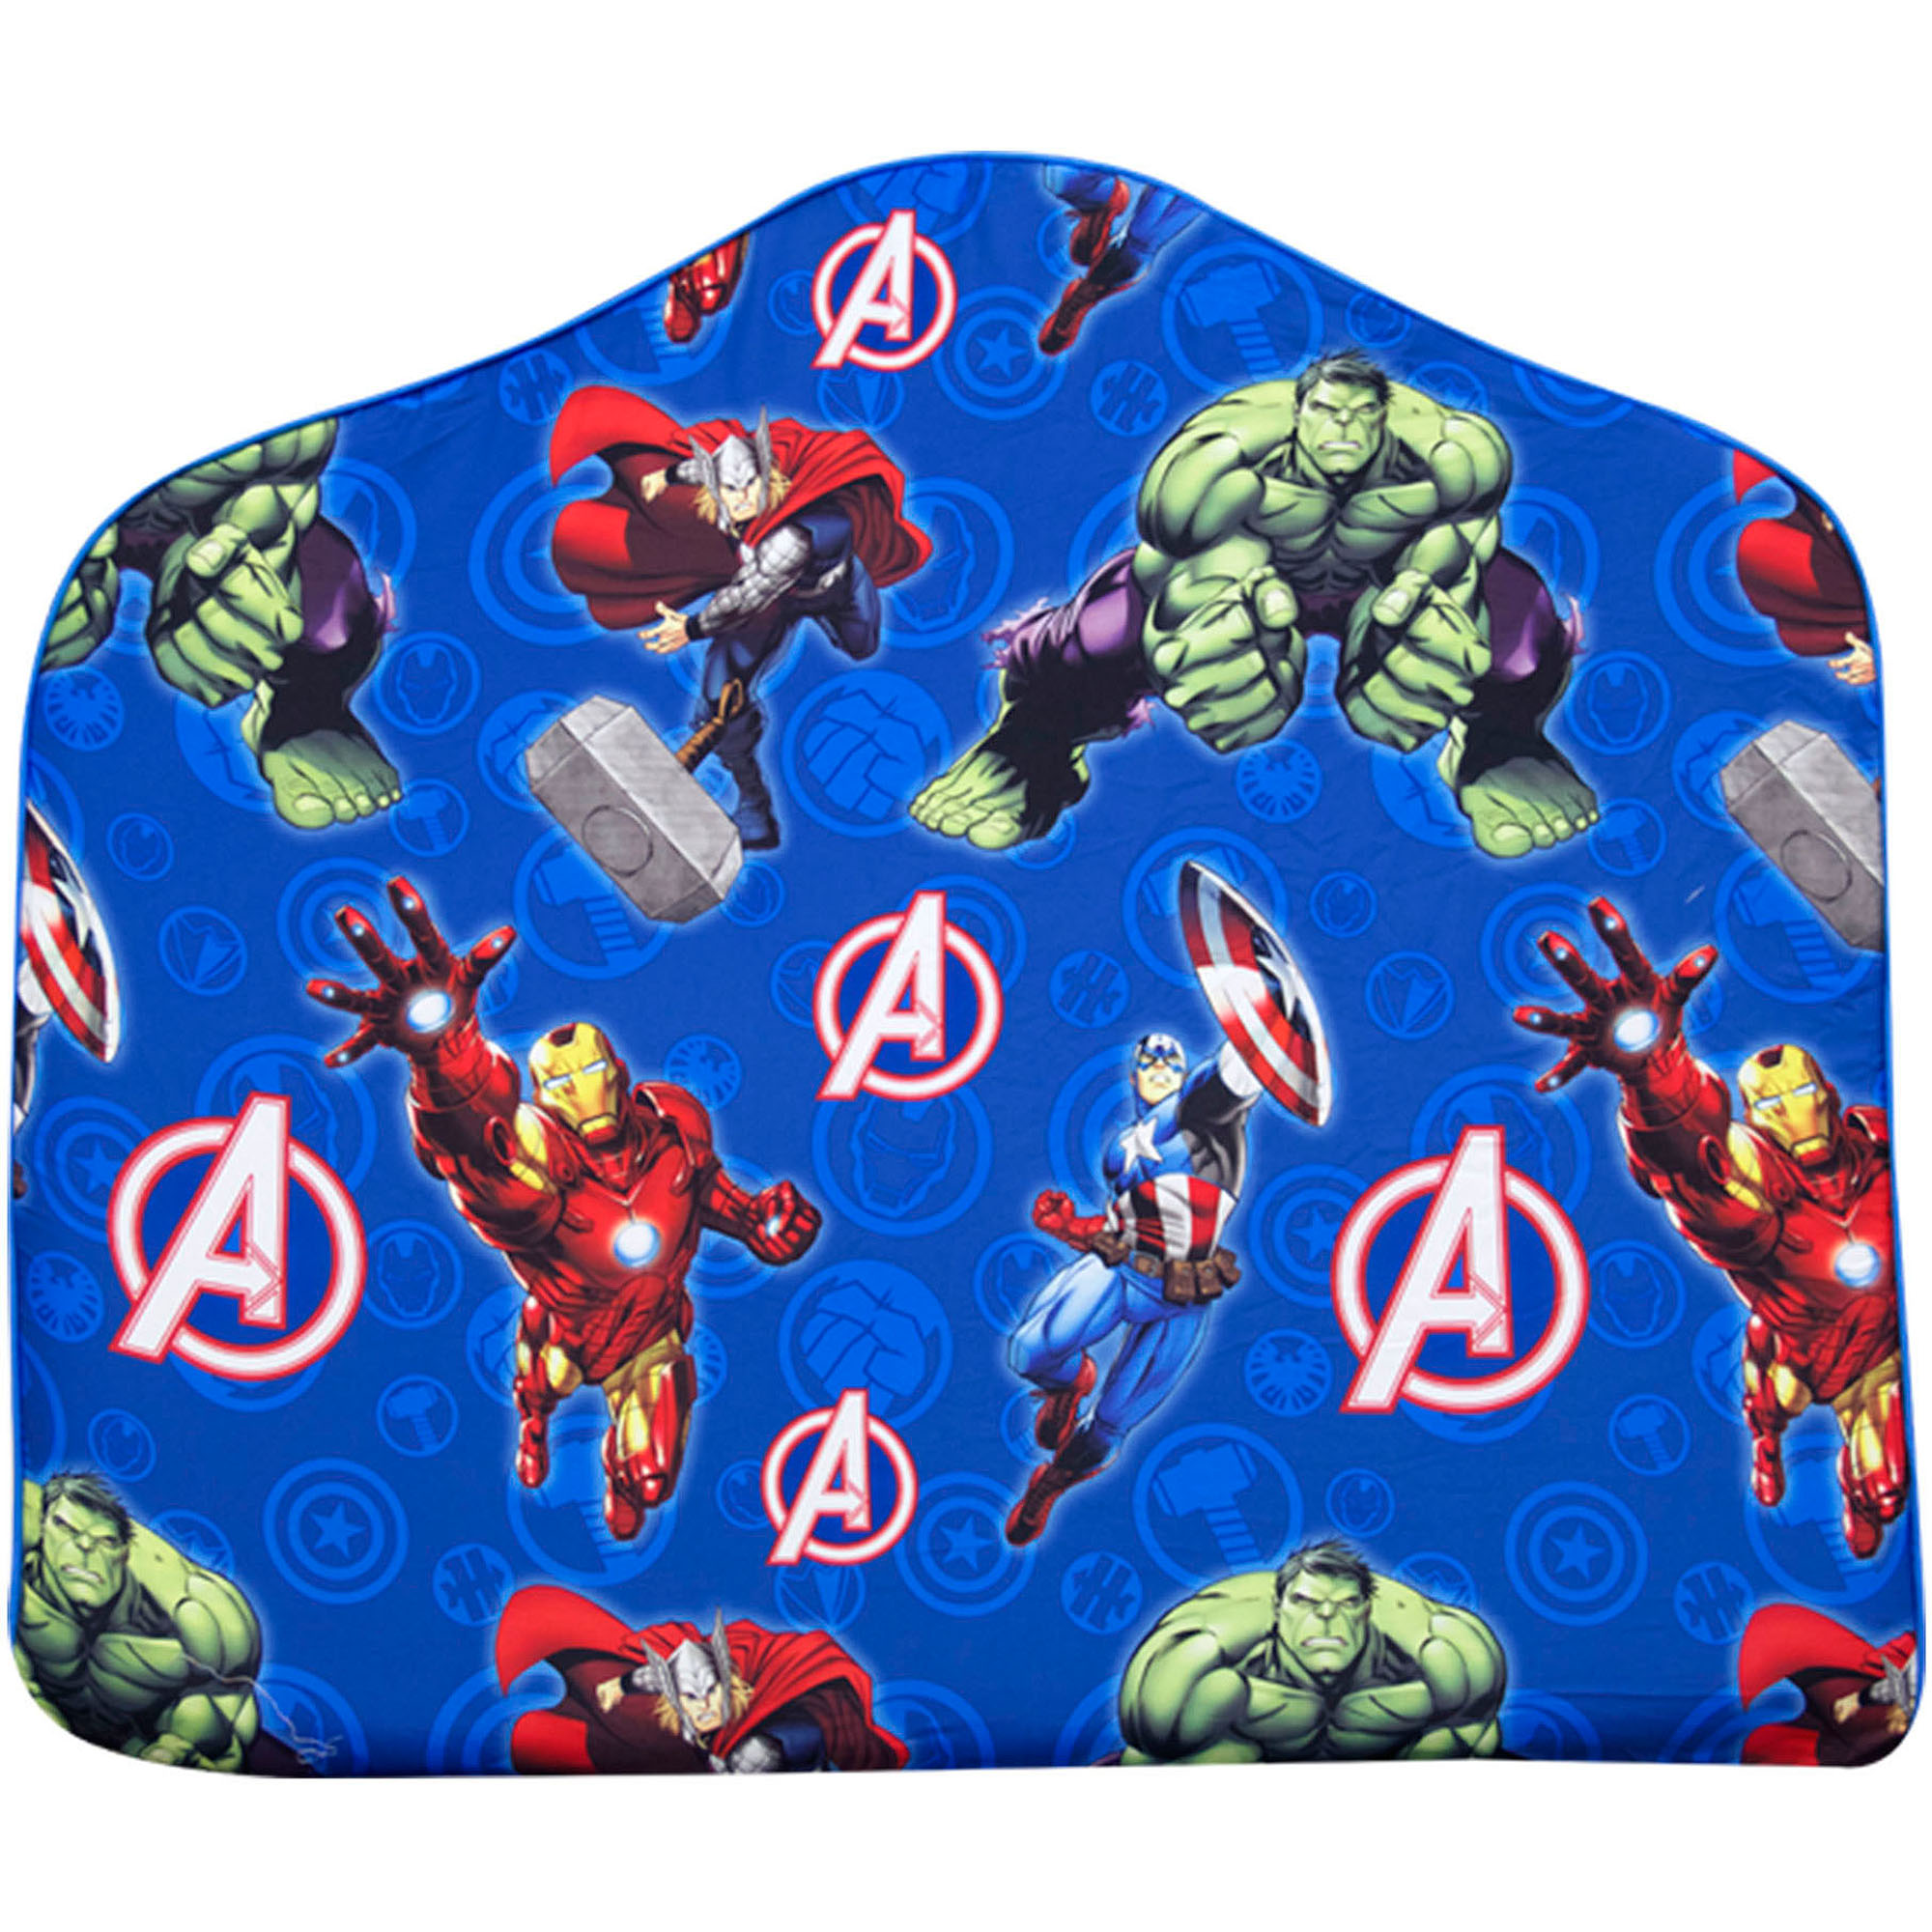 Marvel Avengers Headboard Cover